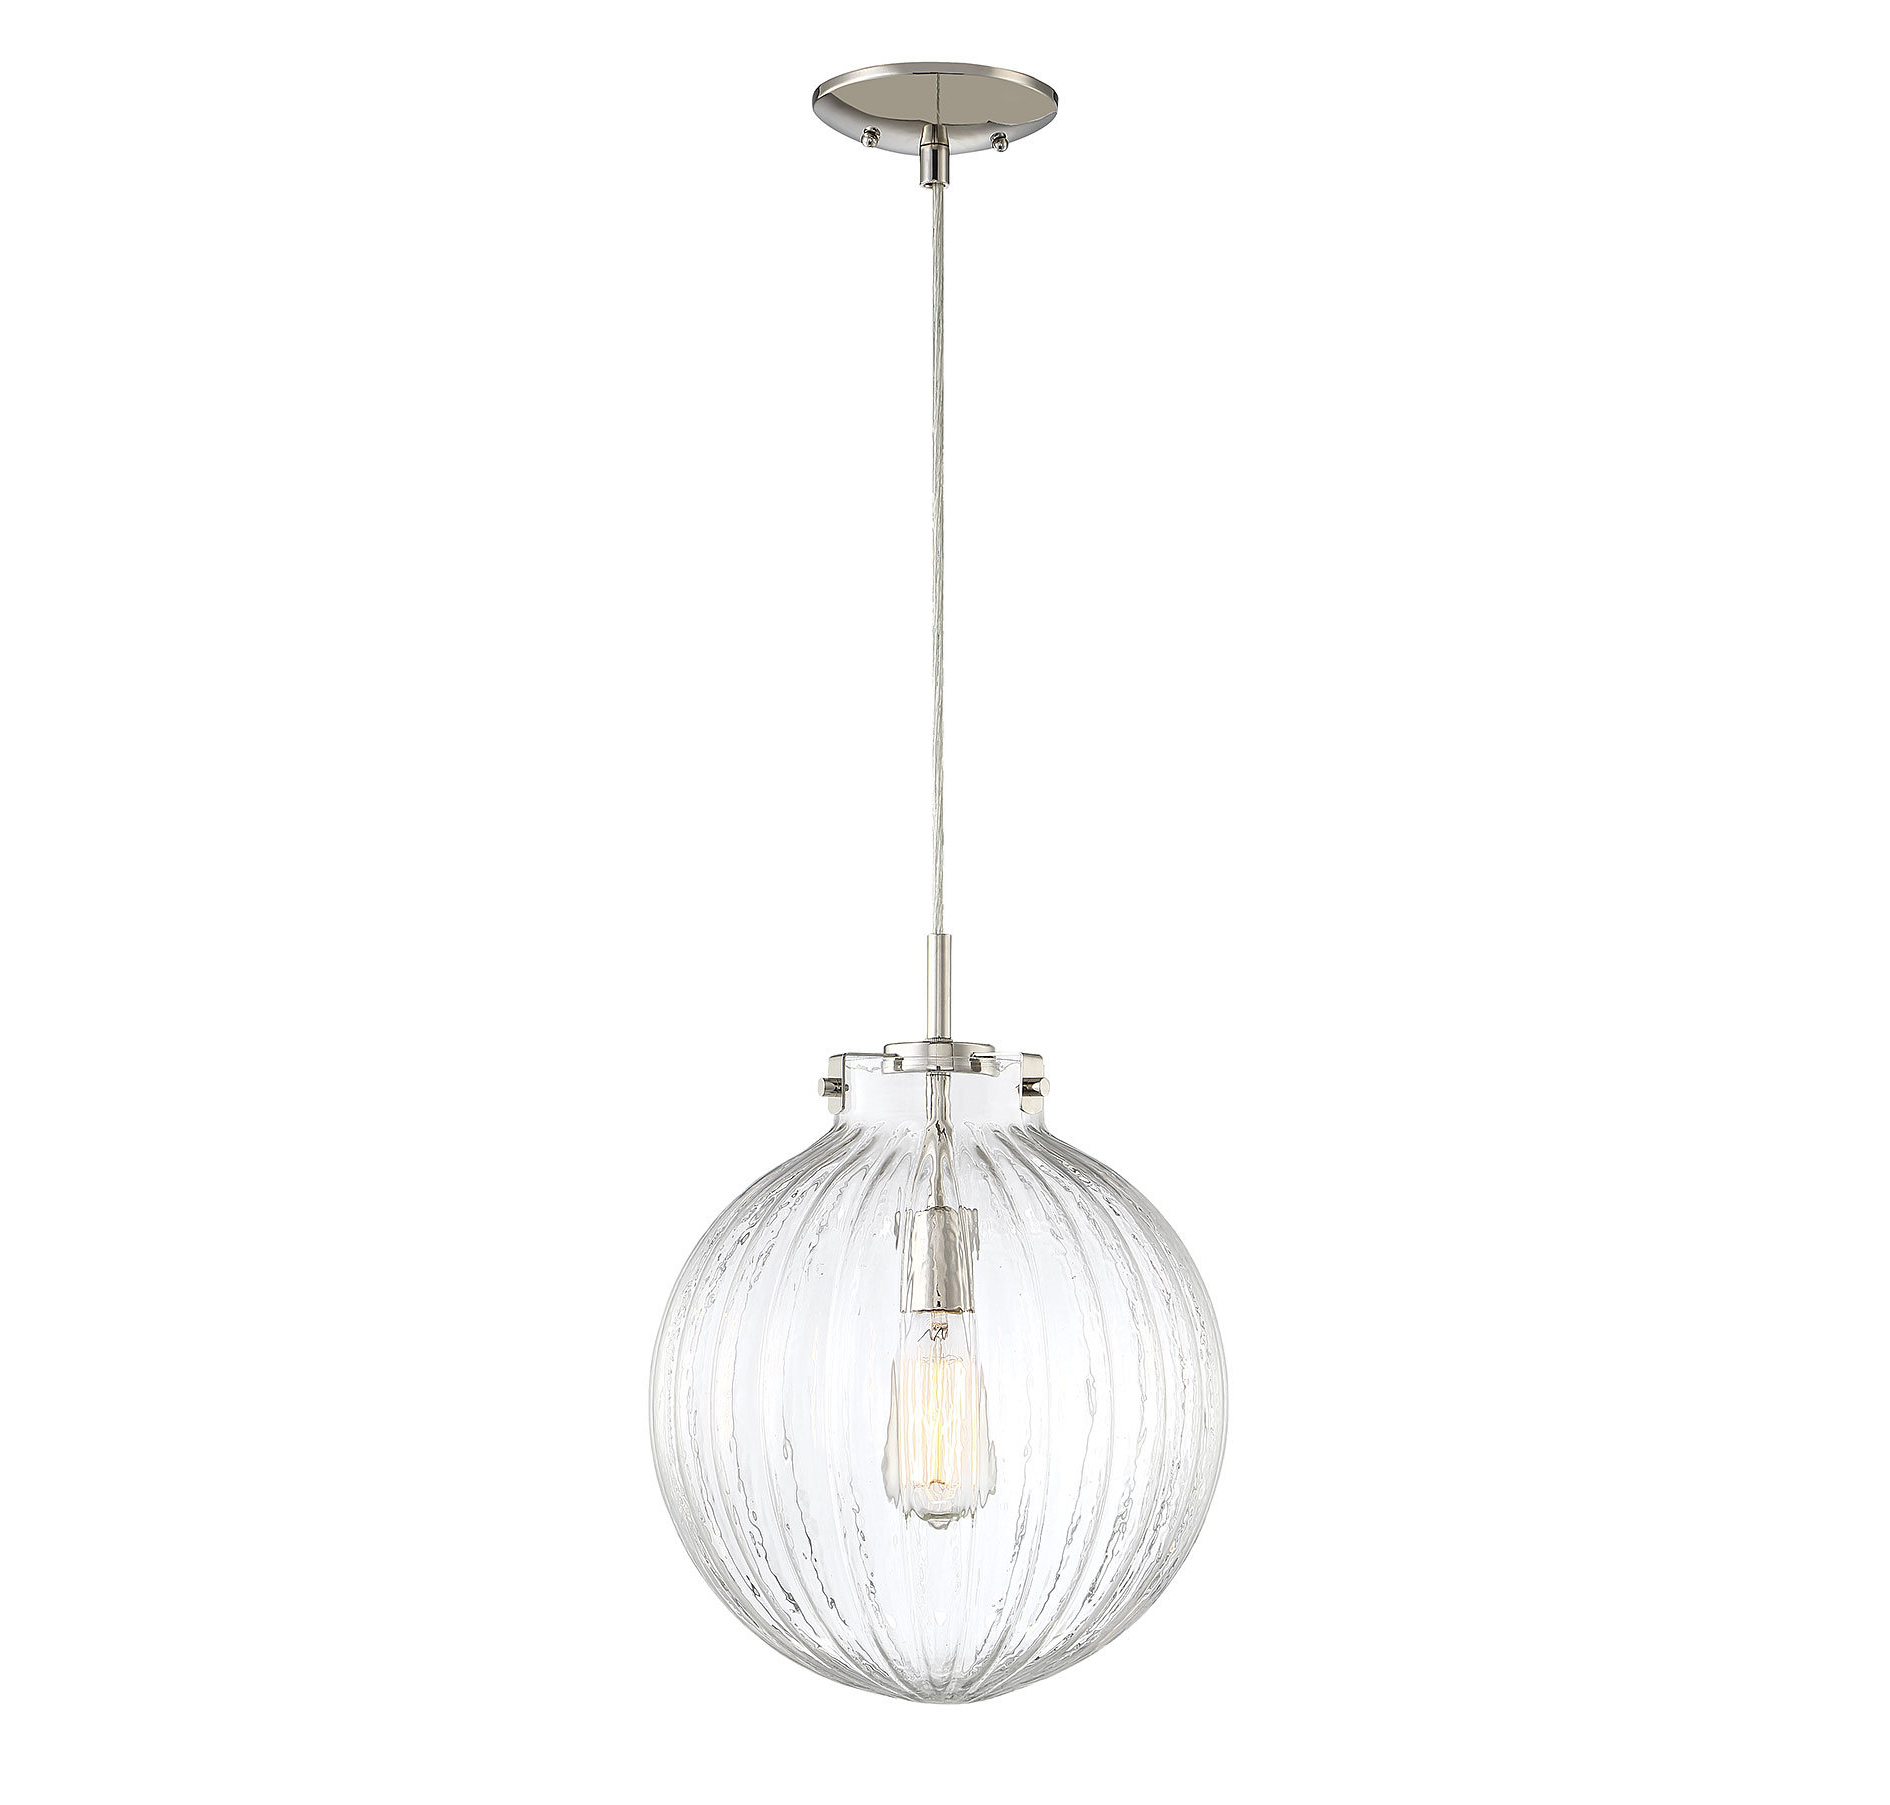 Nevels 1 Light Single Globe Pendant With Regard To Most Popular Gehry 1 Light Single Globe Pendants (View 11 of 25)